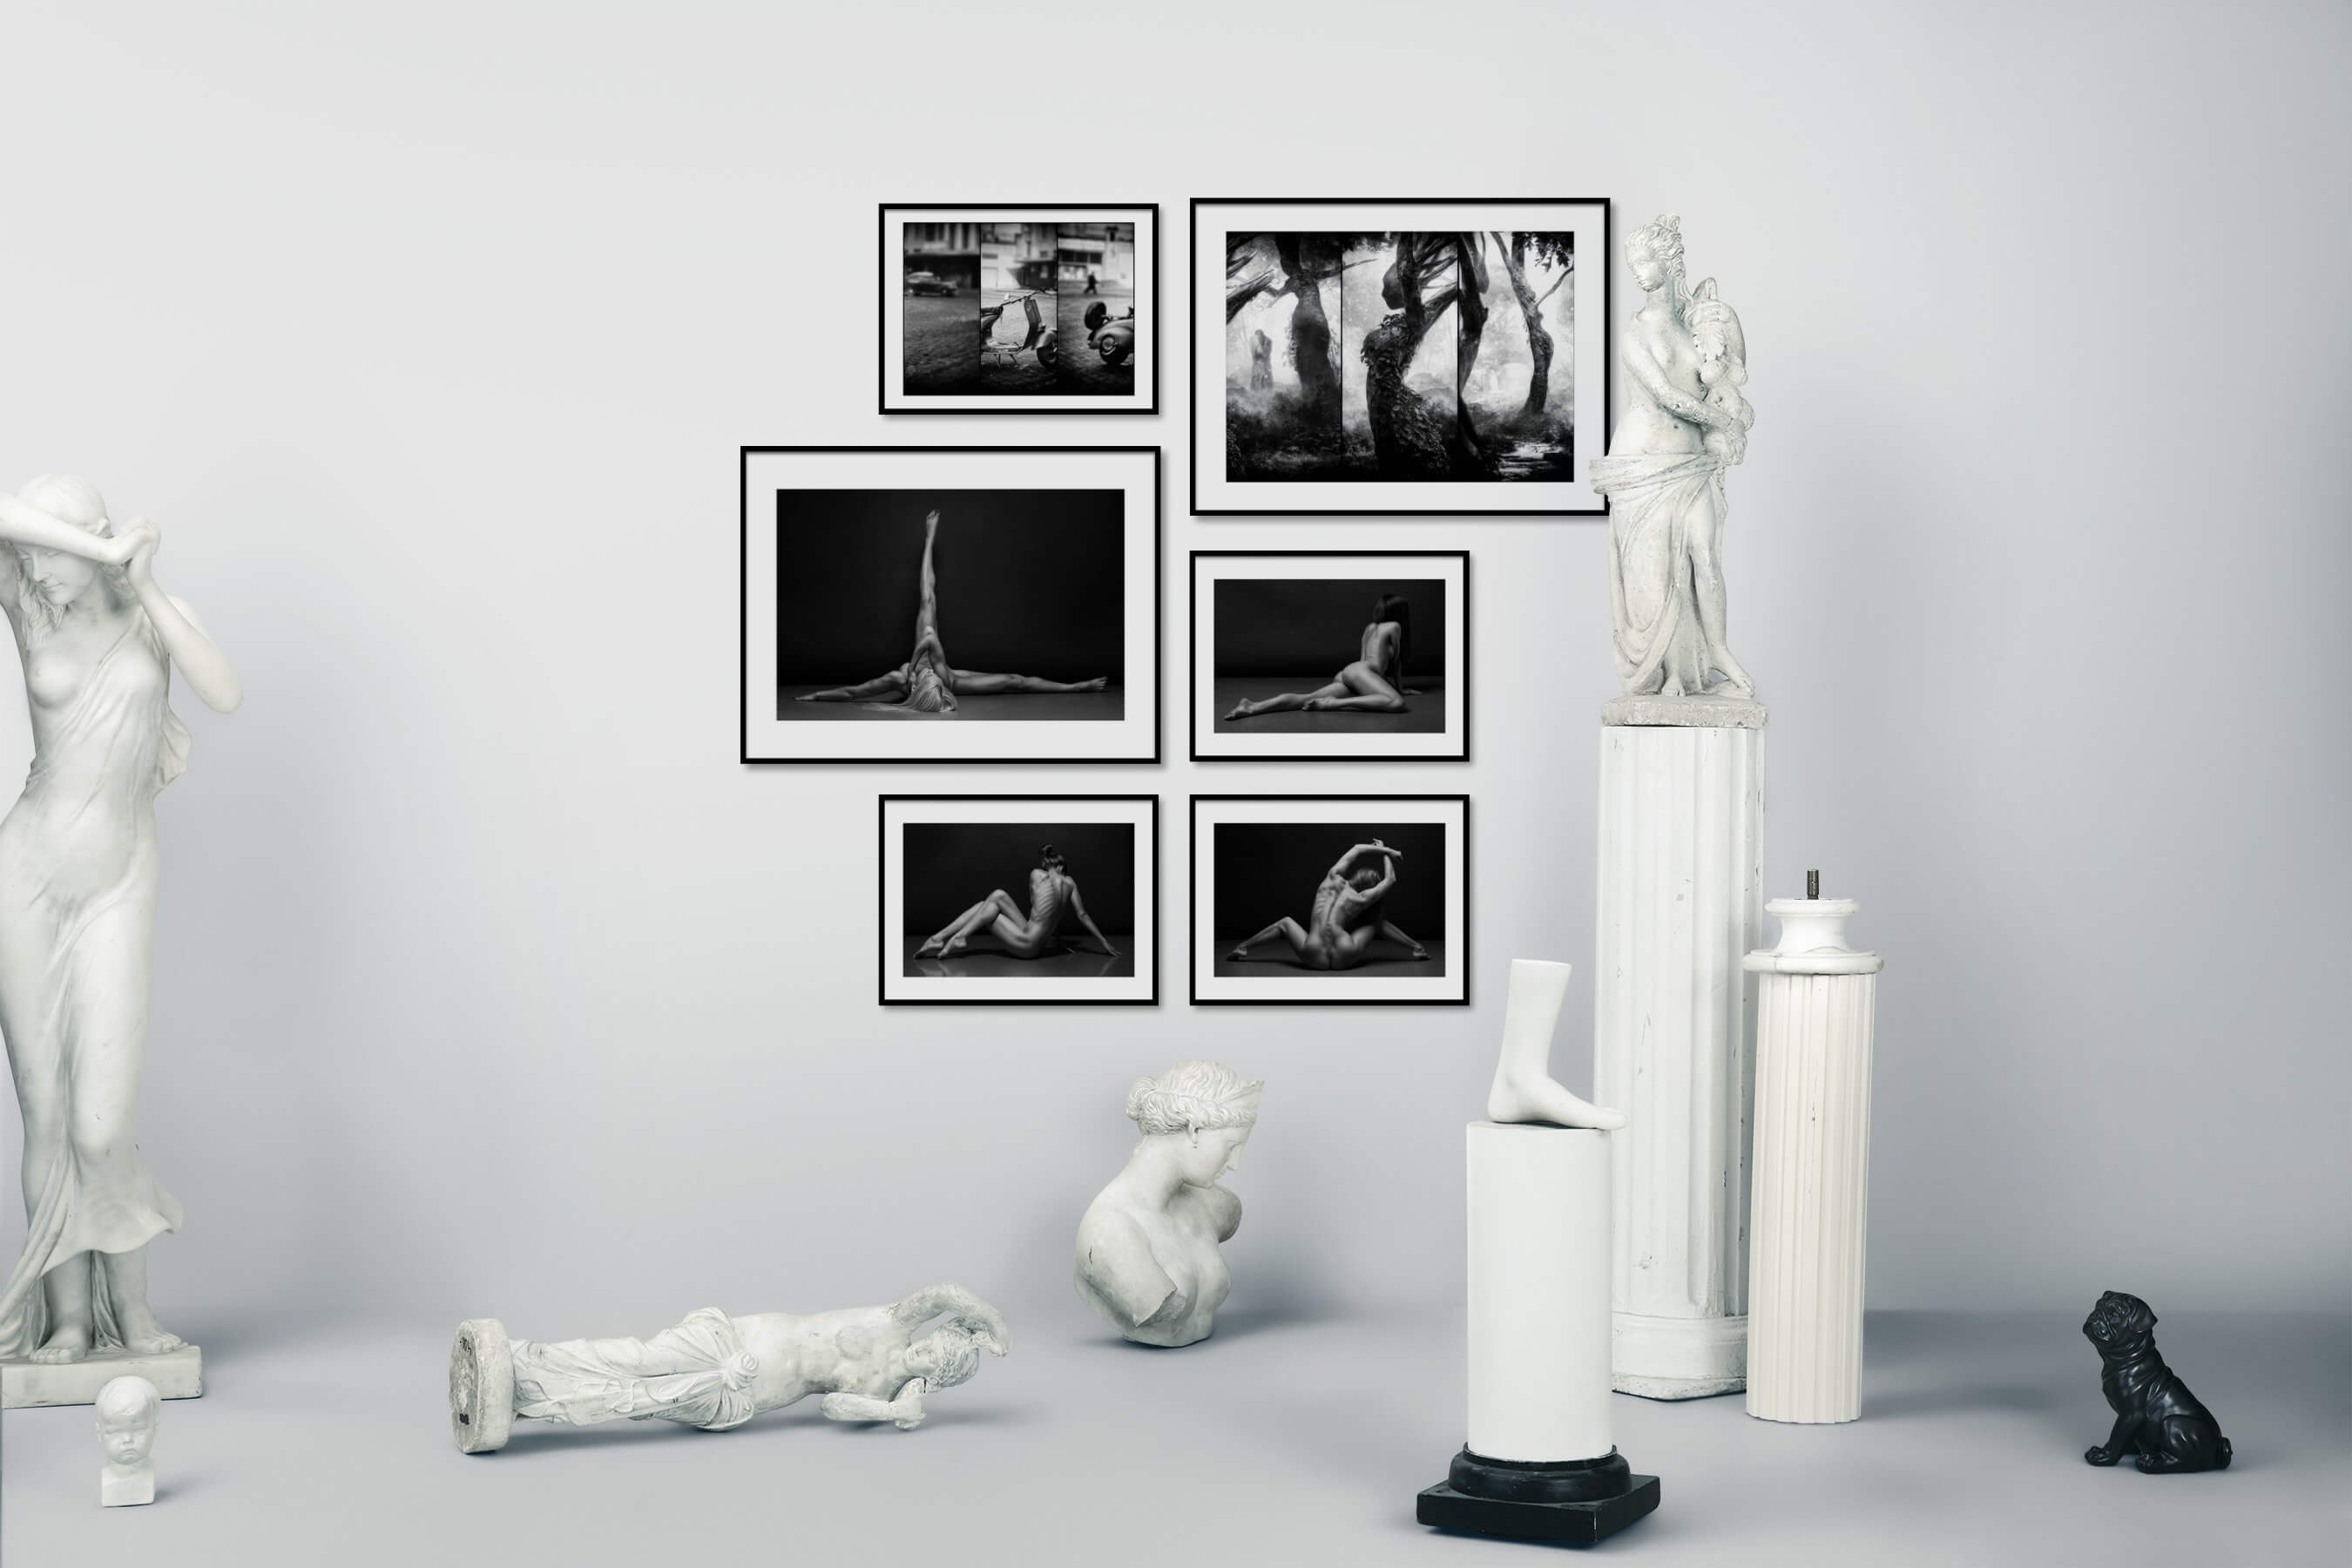 Gallery wall idea with six framed pictures arranged on a wall depicting Black & White, City Life, Vintage, Artsy, Nature, Fashion & Beauty, For the Minimalist, and Mindfulness